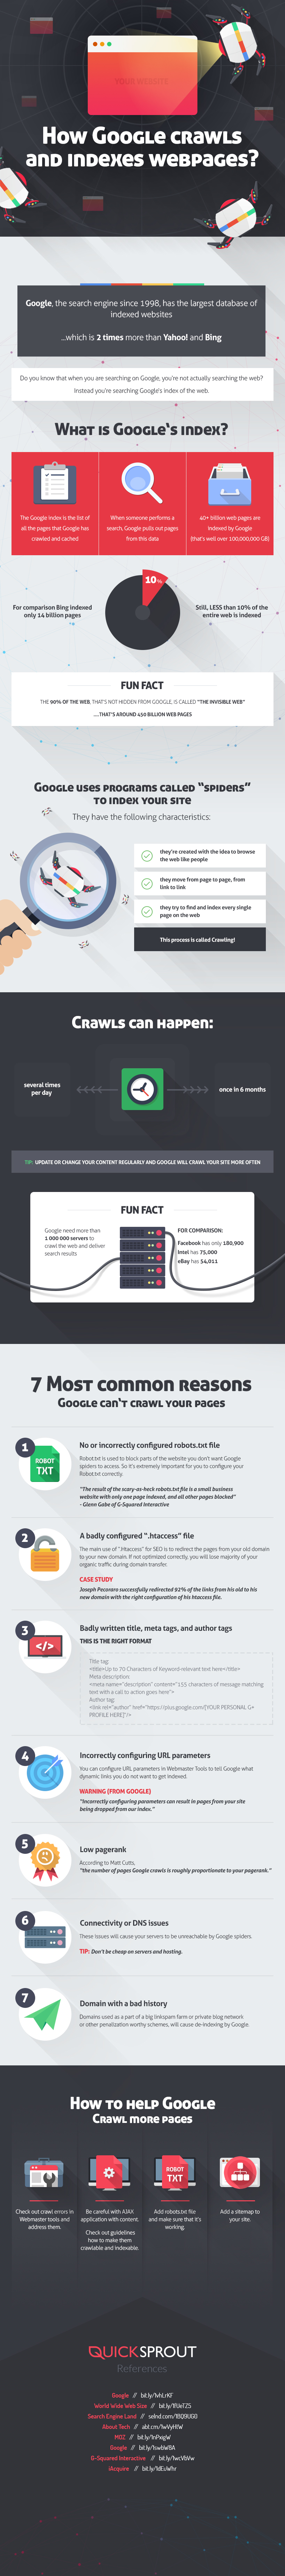 How-Google-crawls-and-indexes-webpages